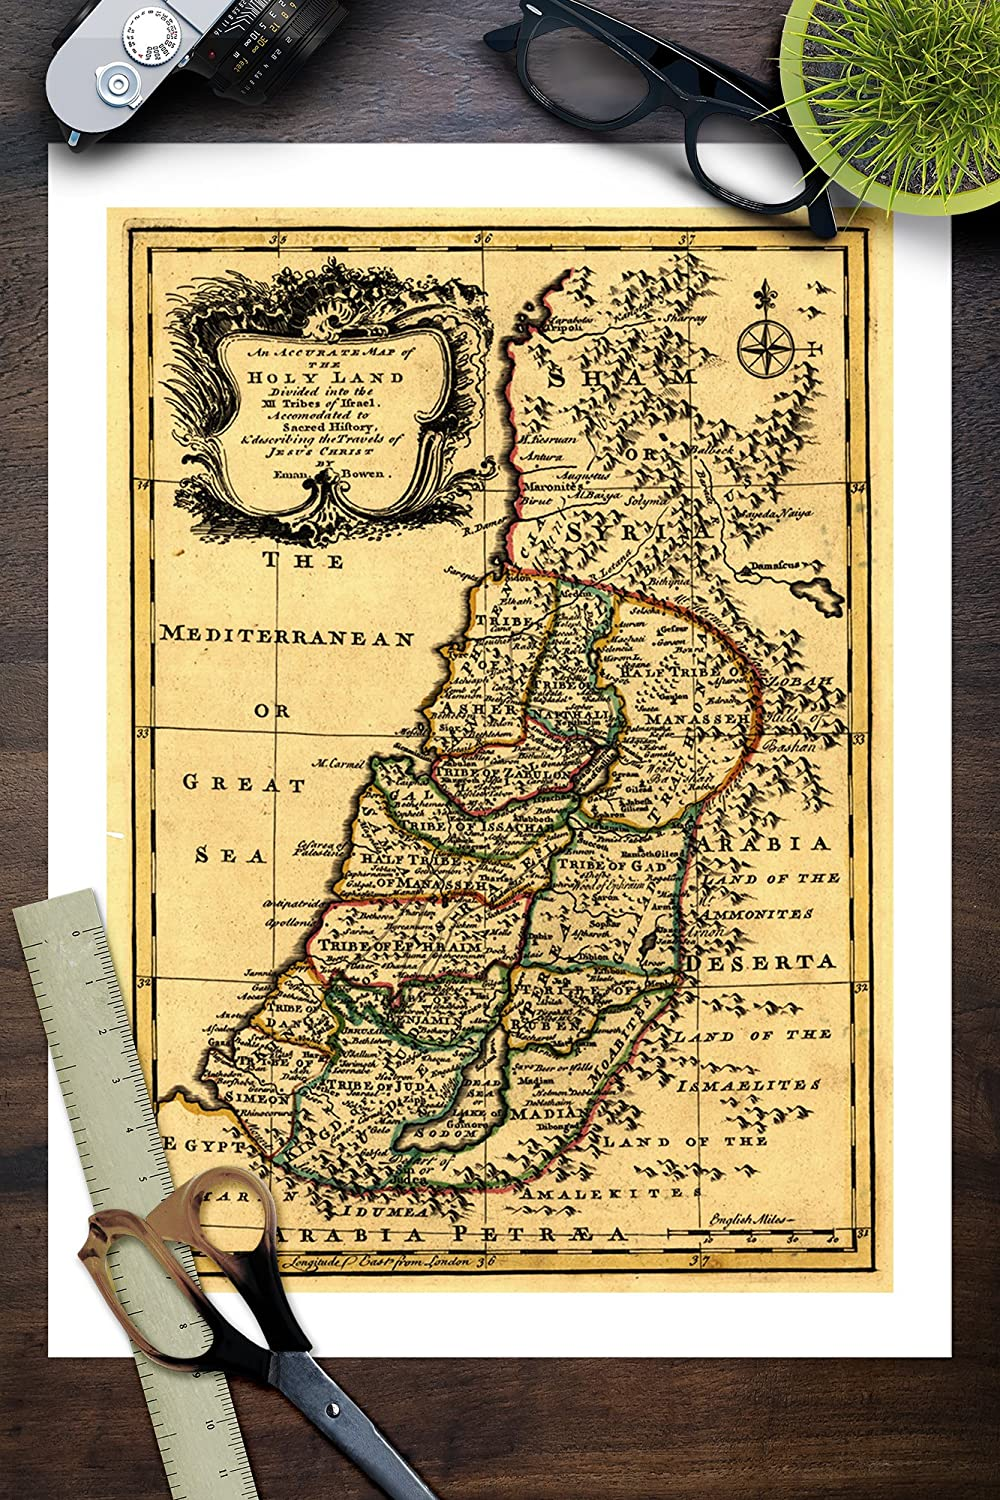 Amazon.com: The Tribes of Israel in Palestine - Panoramic Map (9x12 ...